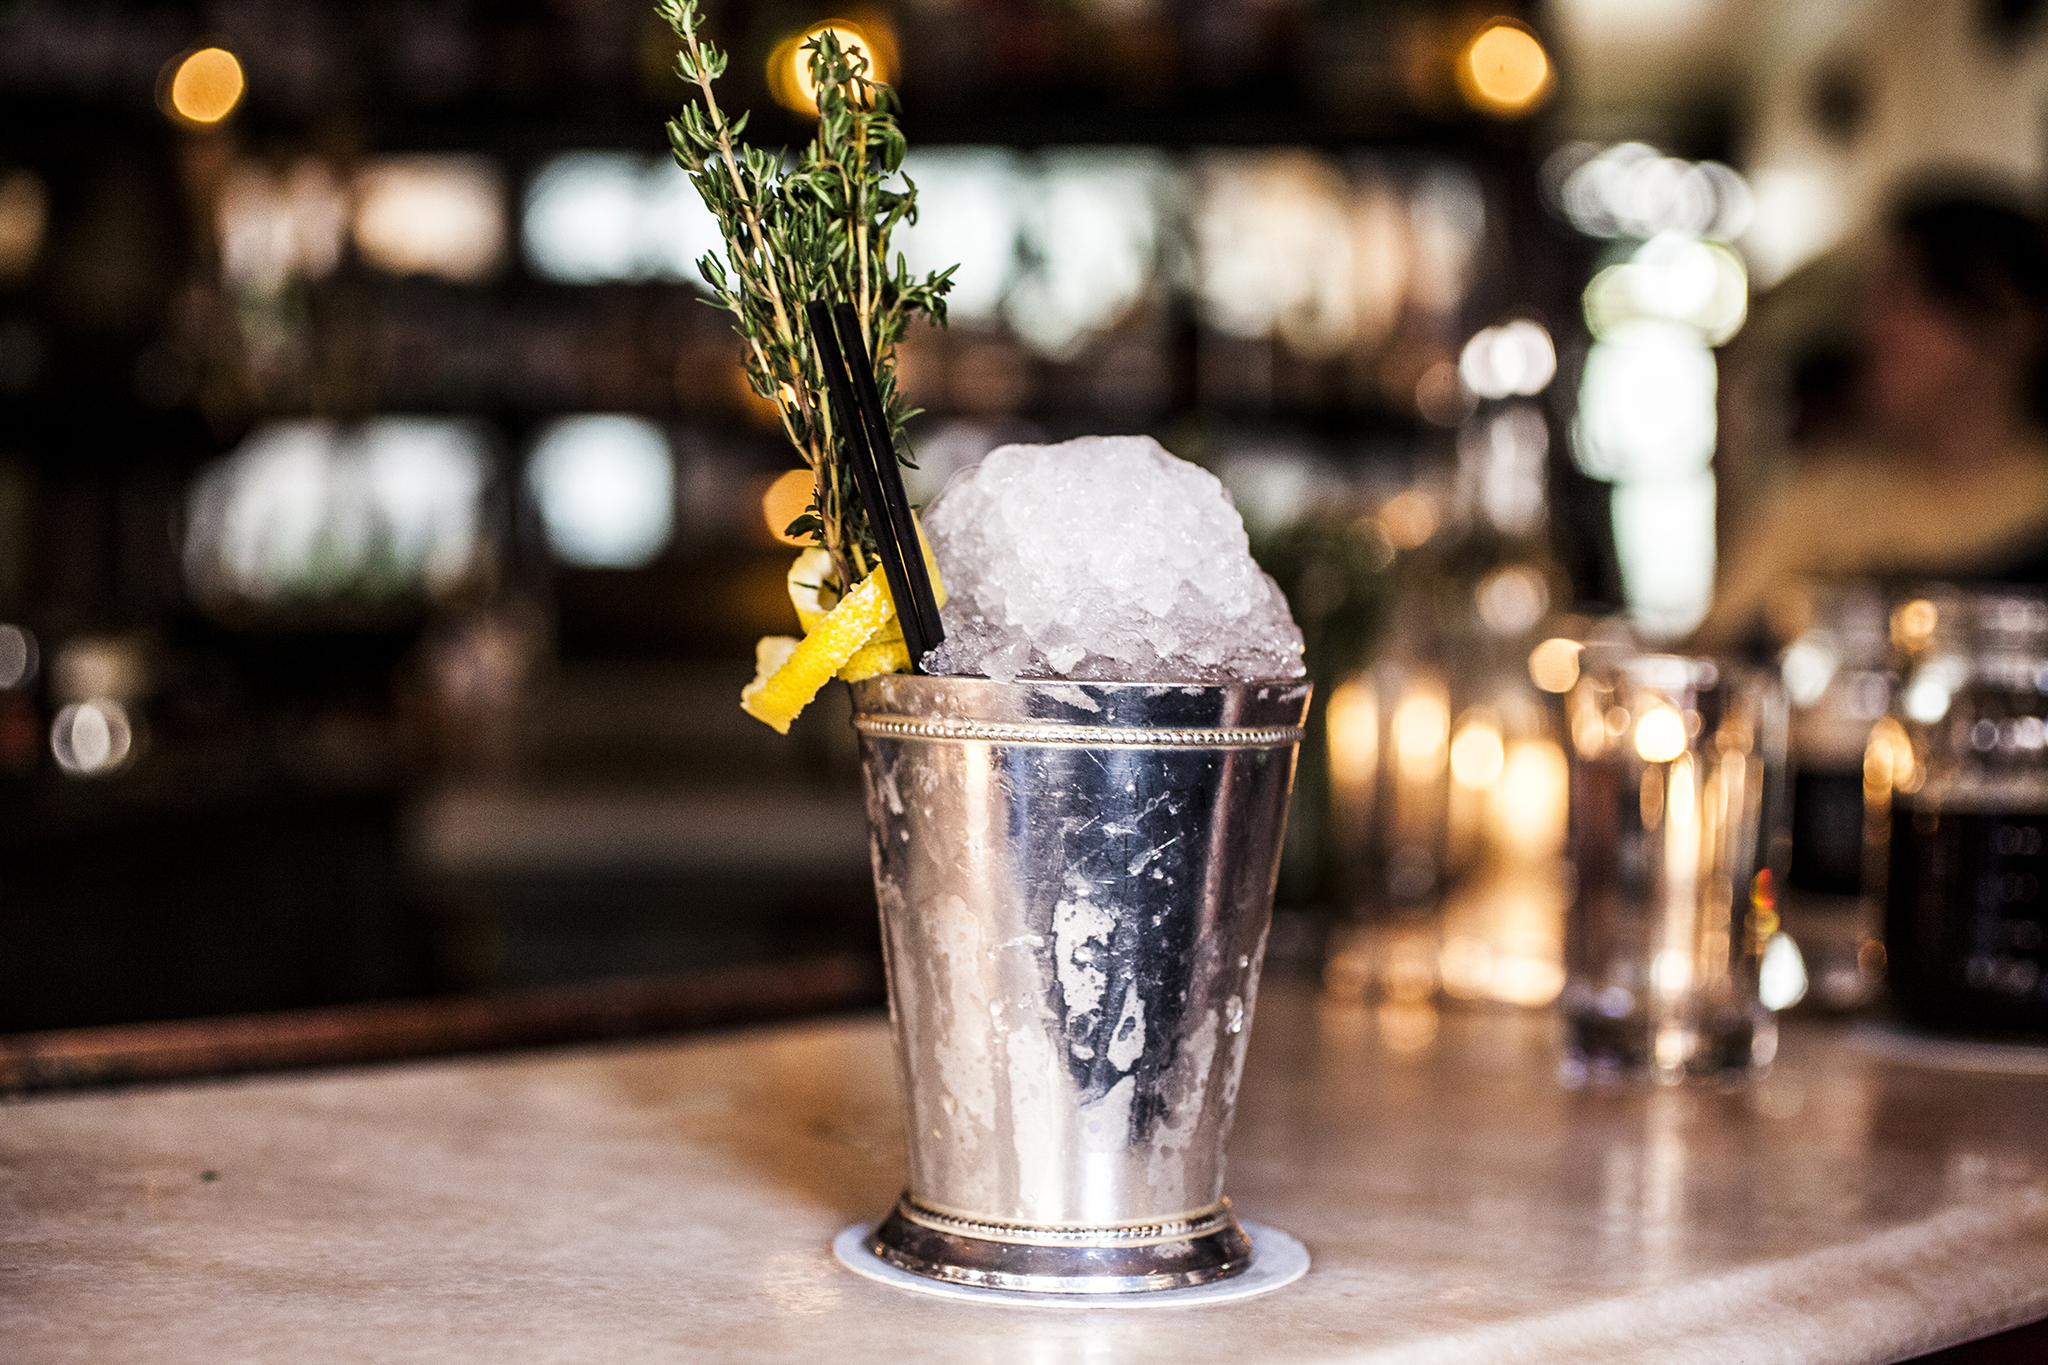 The 50 best New York bars